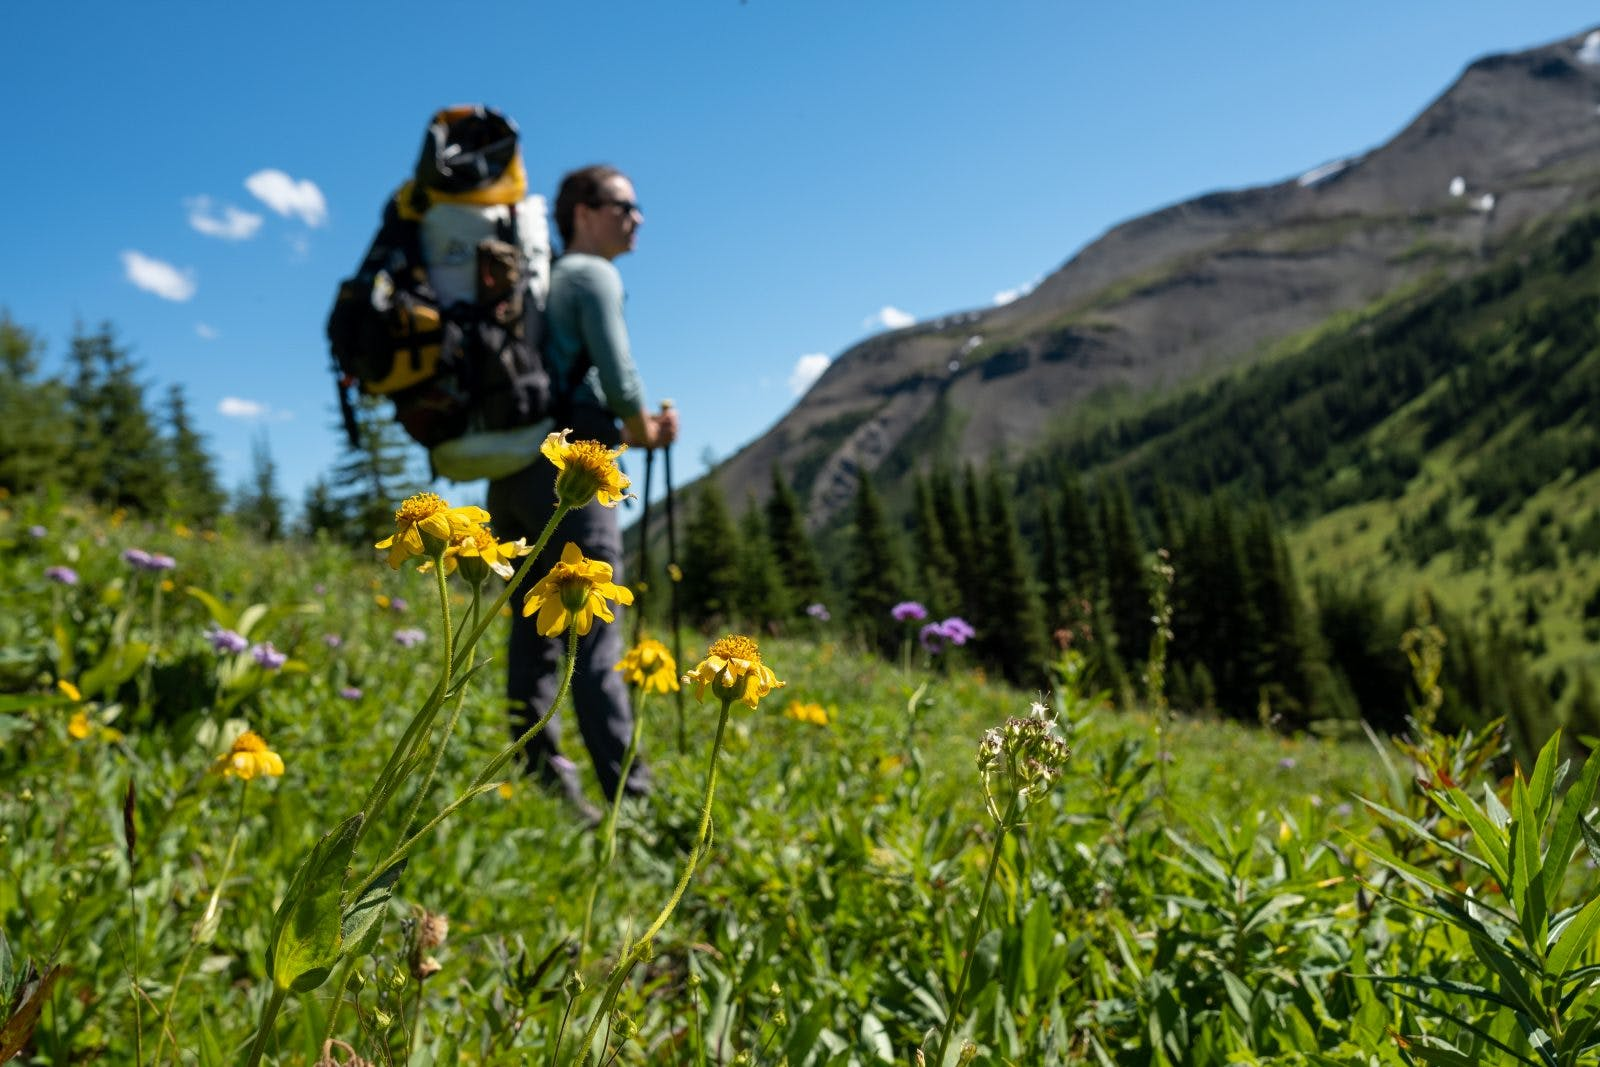 Sub-alpine flowers blooming just before Snake Indian Pass. Photo by Coburn Brown